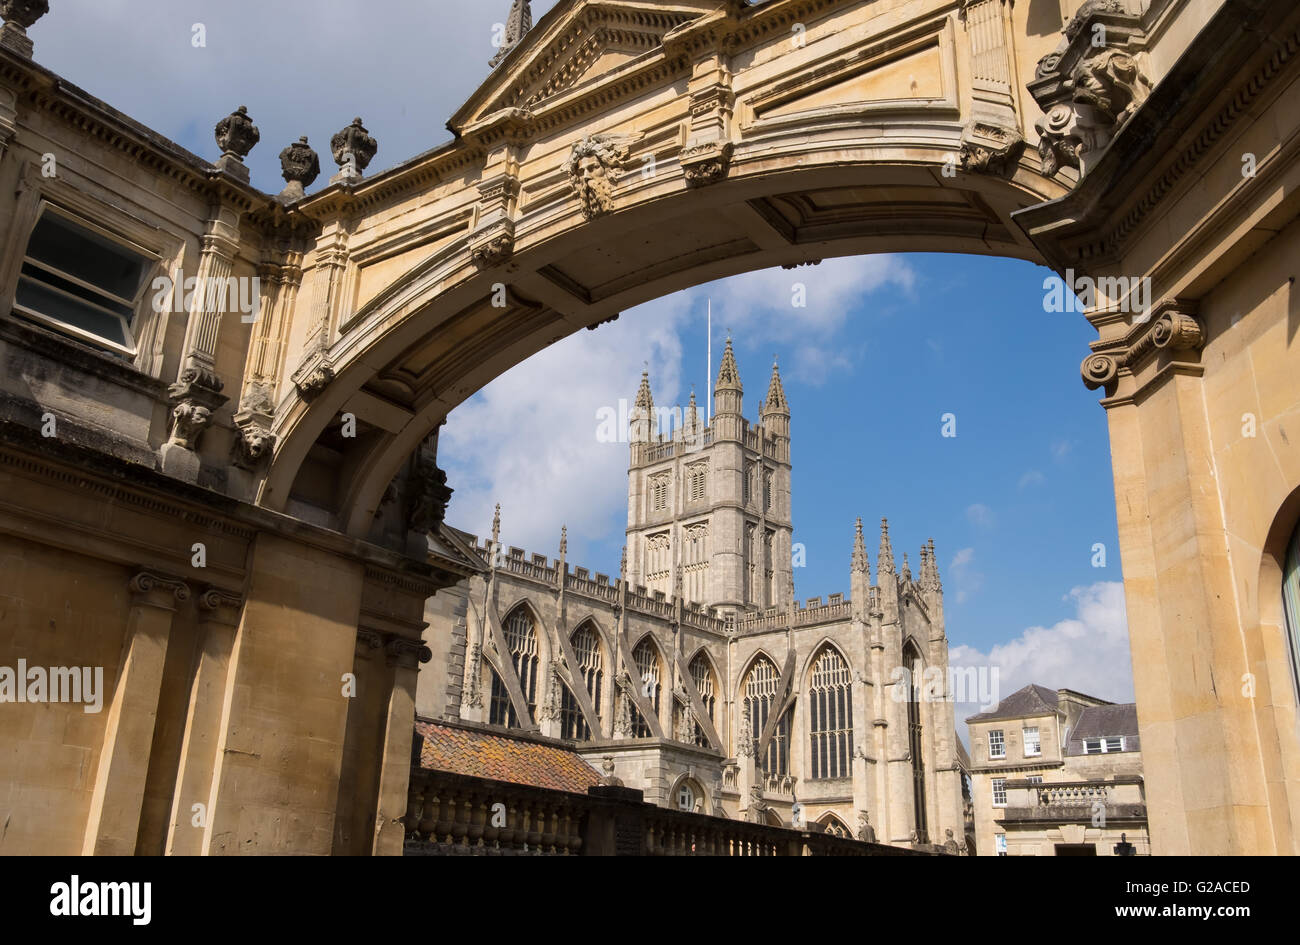 Bath Abbey, Somerset, England - Stock Image